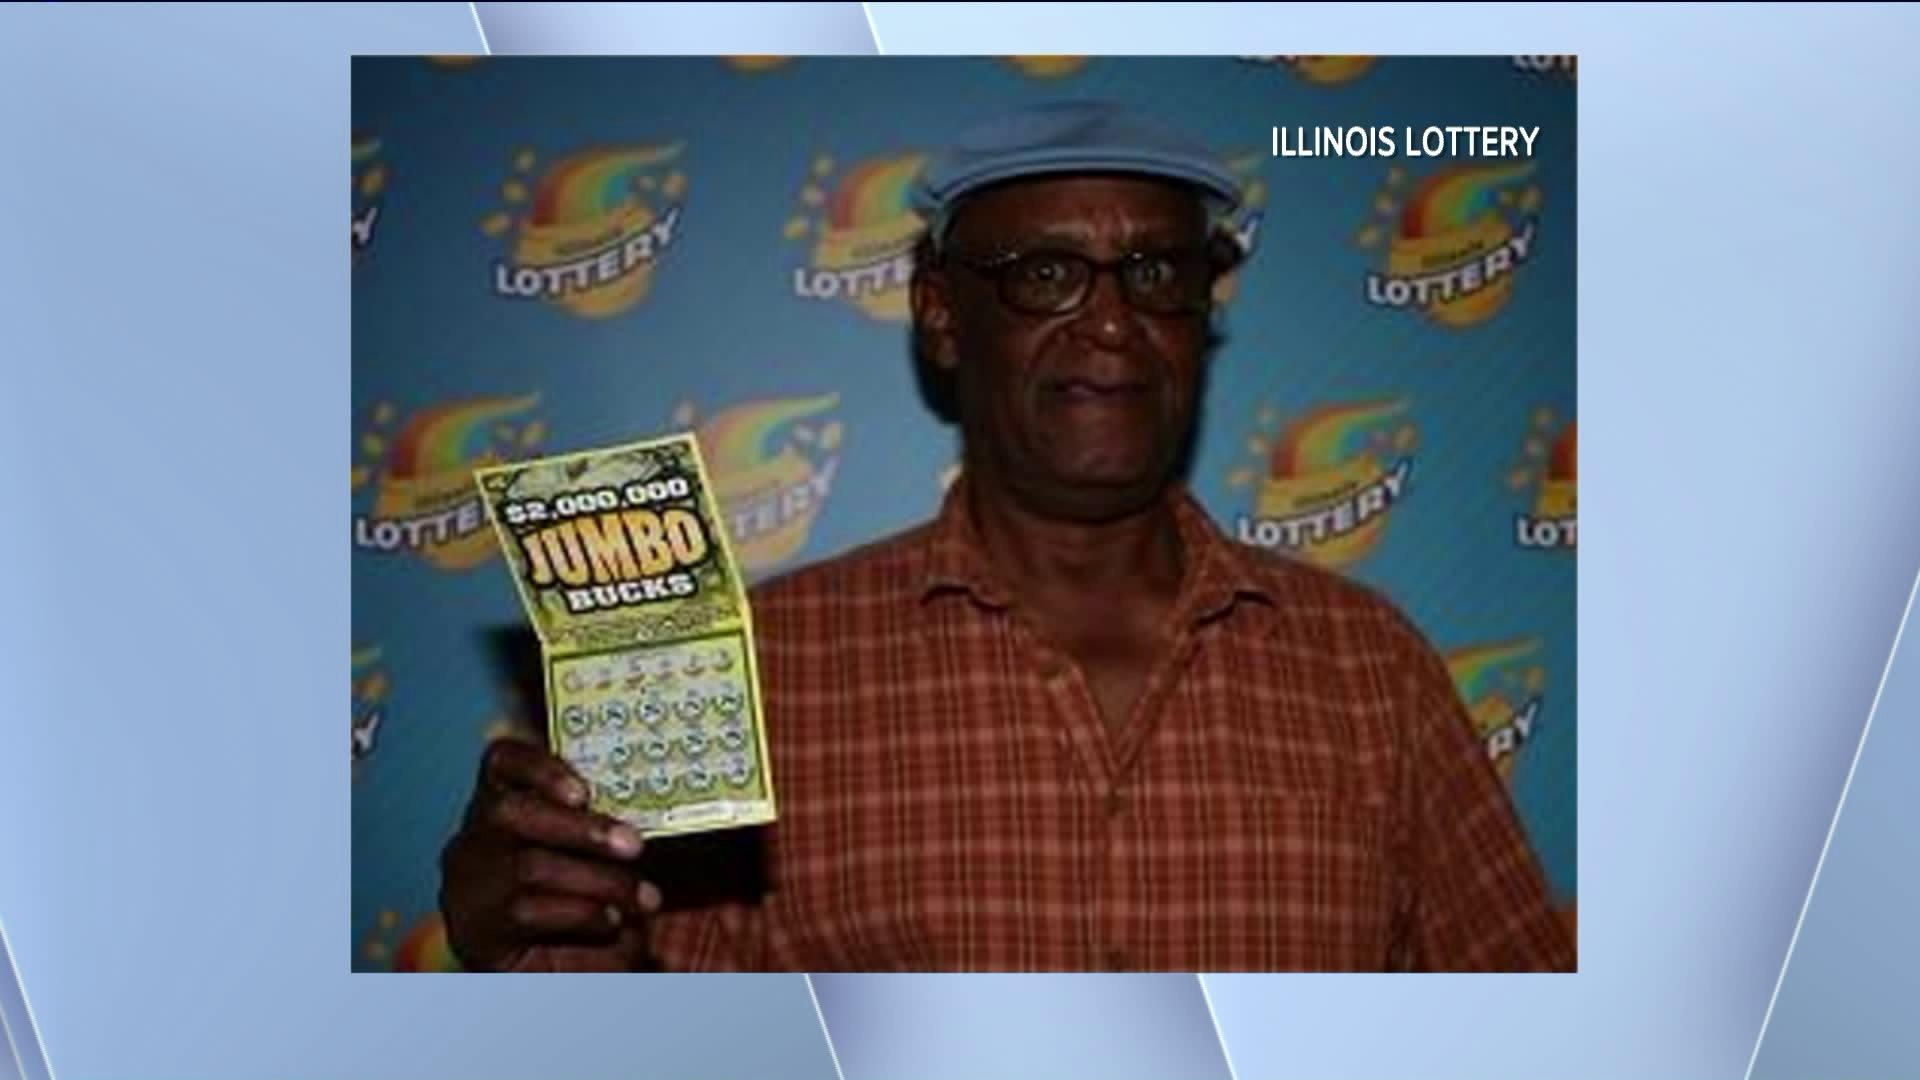 Retired Chicago Bus Driver Wins Lottery While Riding Bus